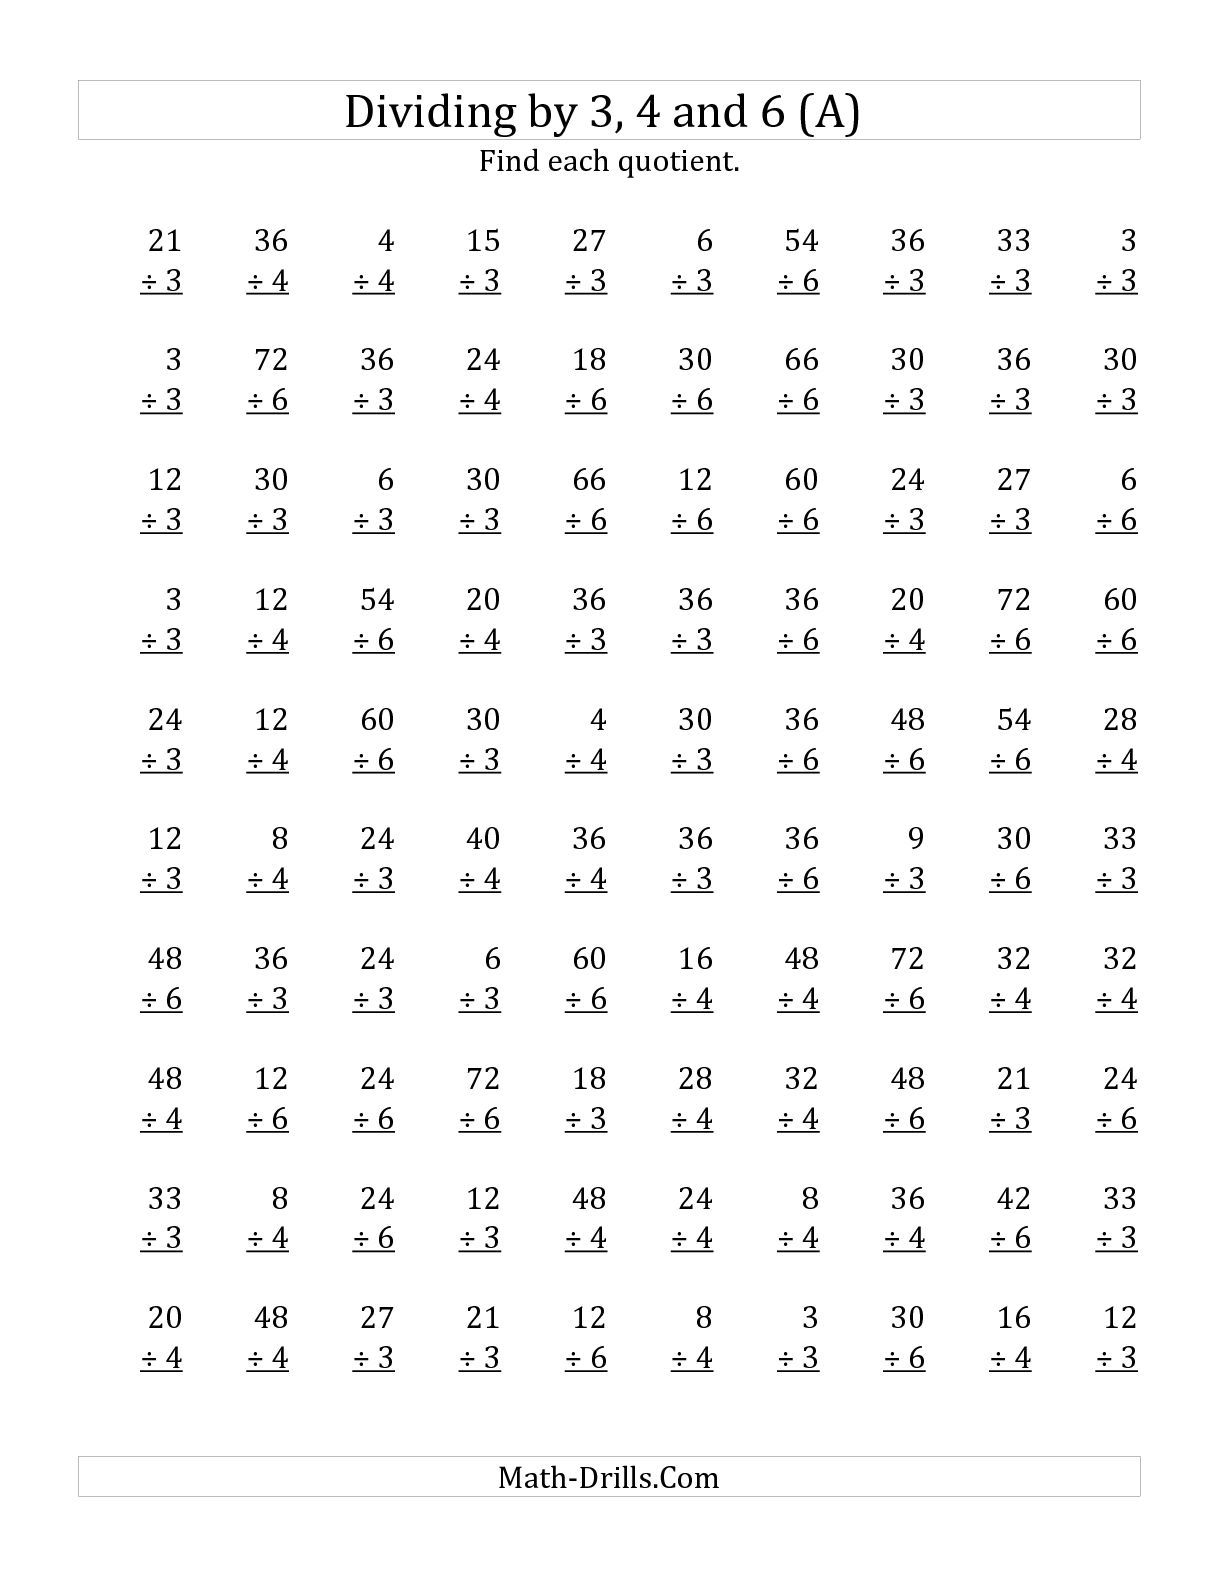 The Dividing By 3 4 And 6 Quotients 1 To 12 A Math